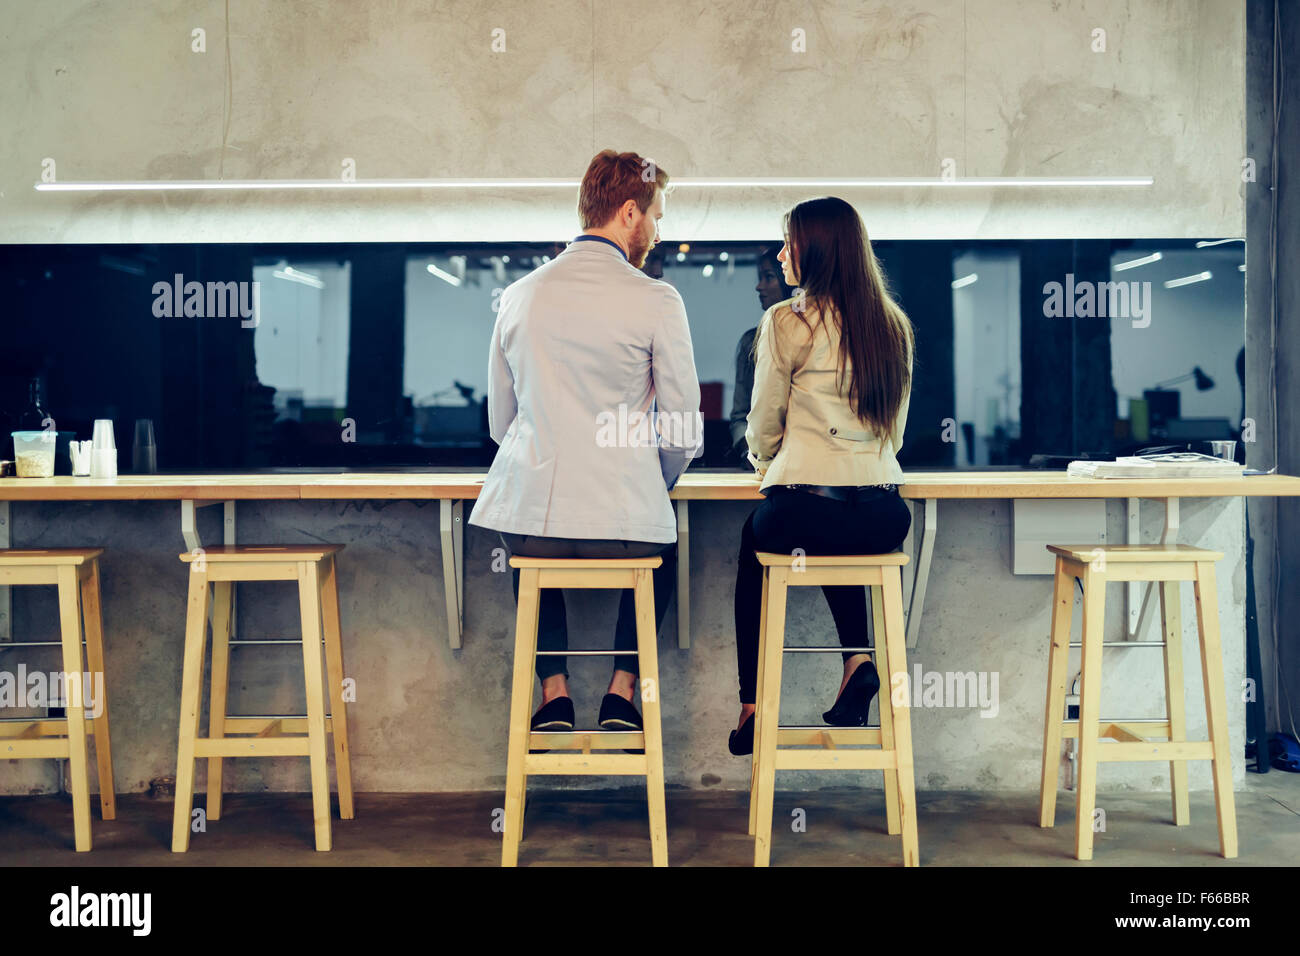 Young colleagues flirting in a bar and talking while sitting on chairs - Stock Image